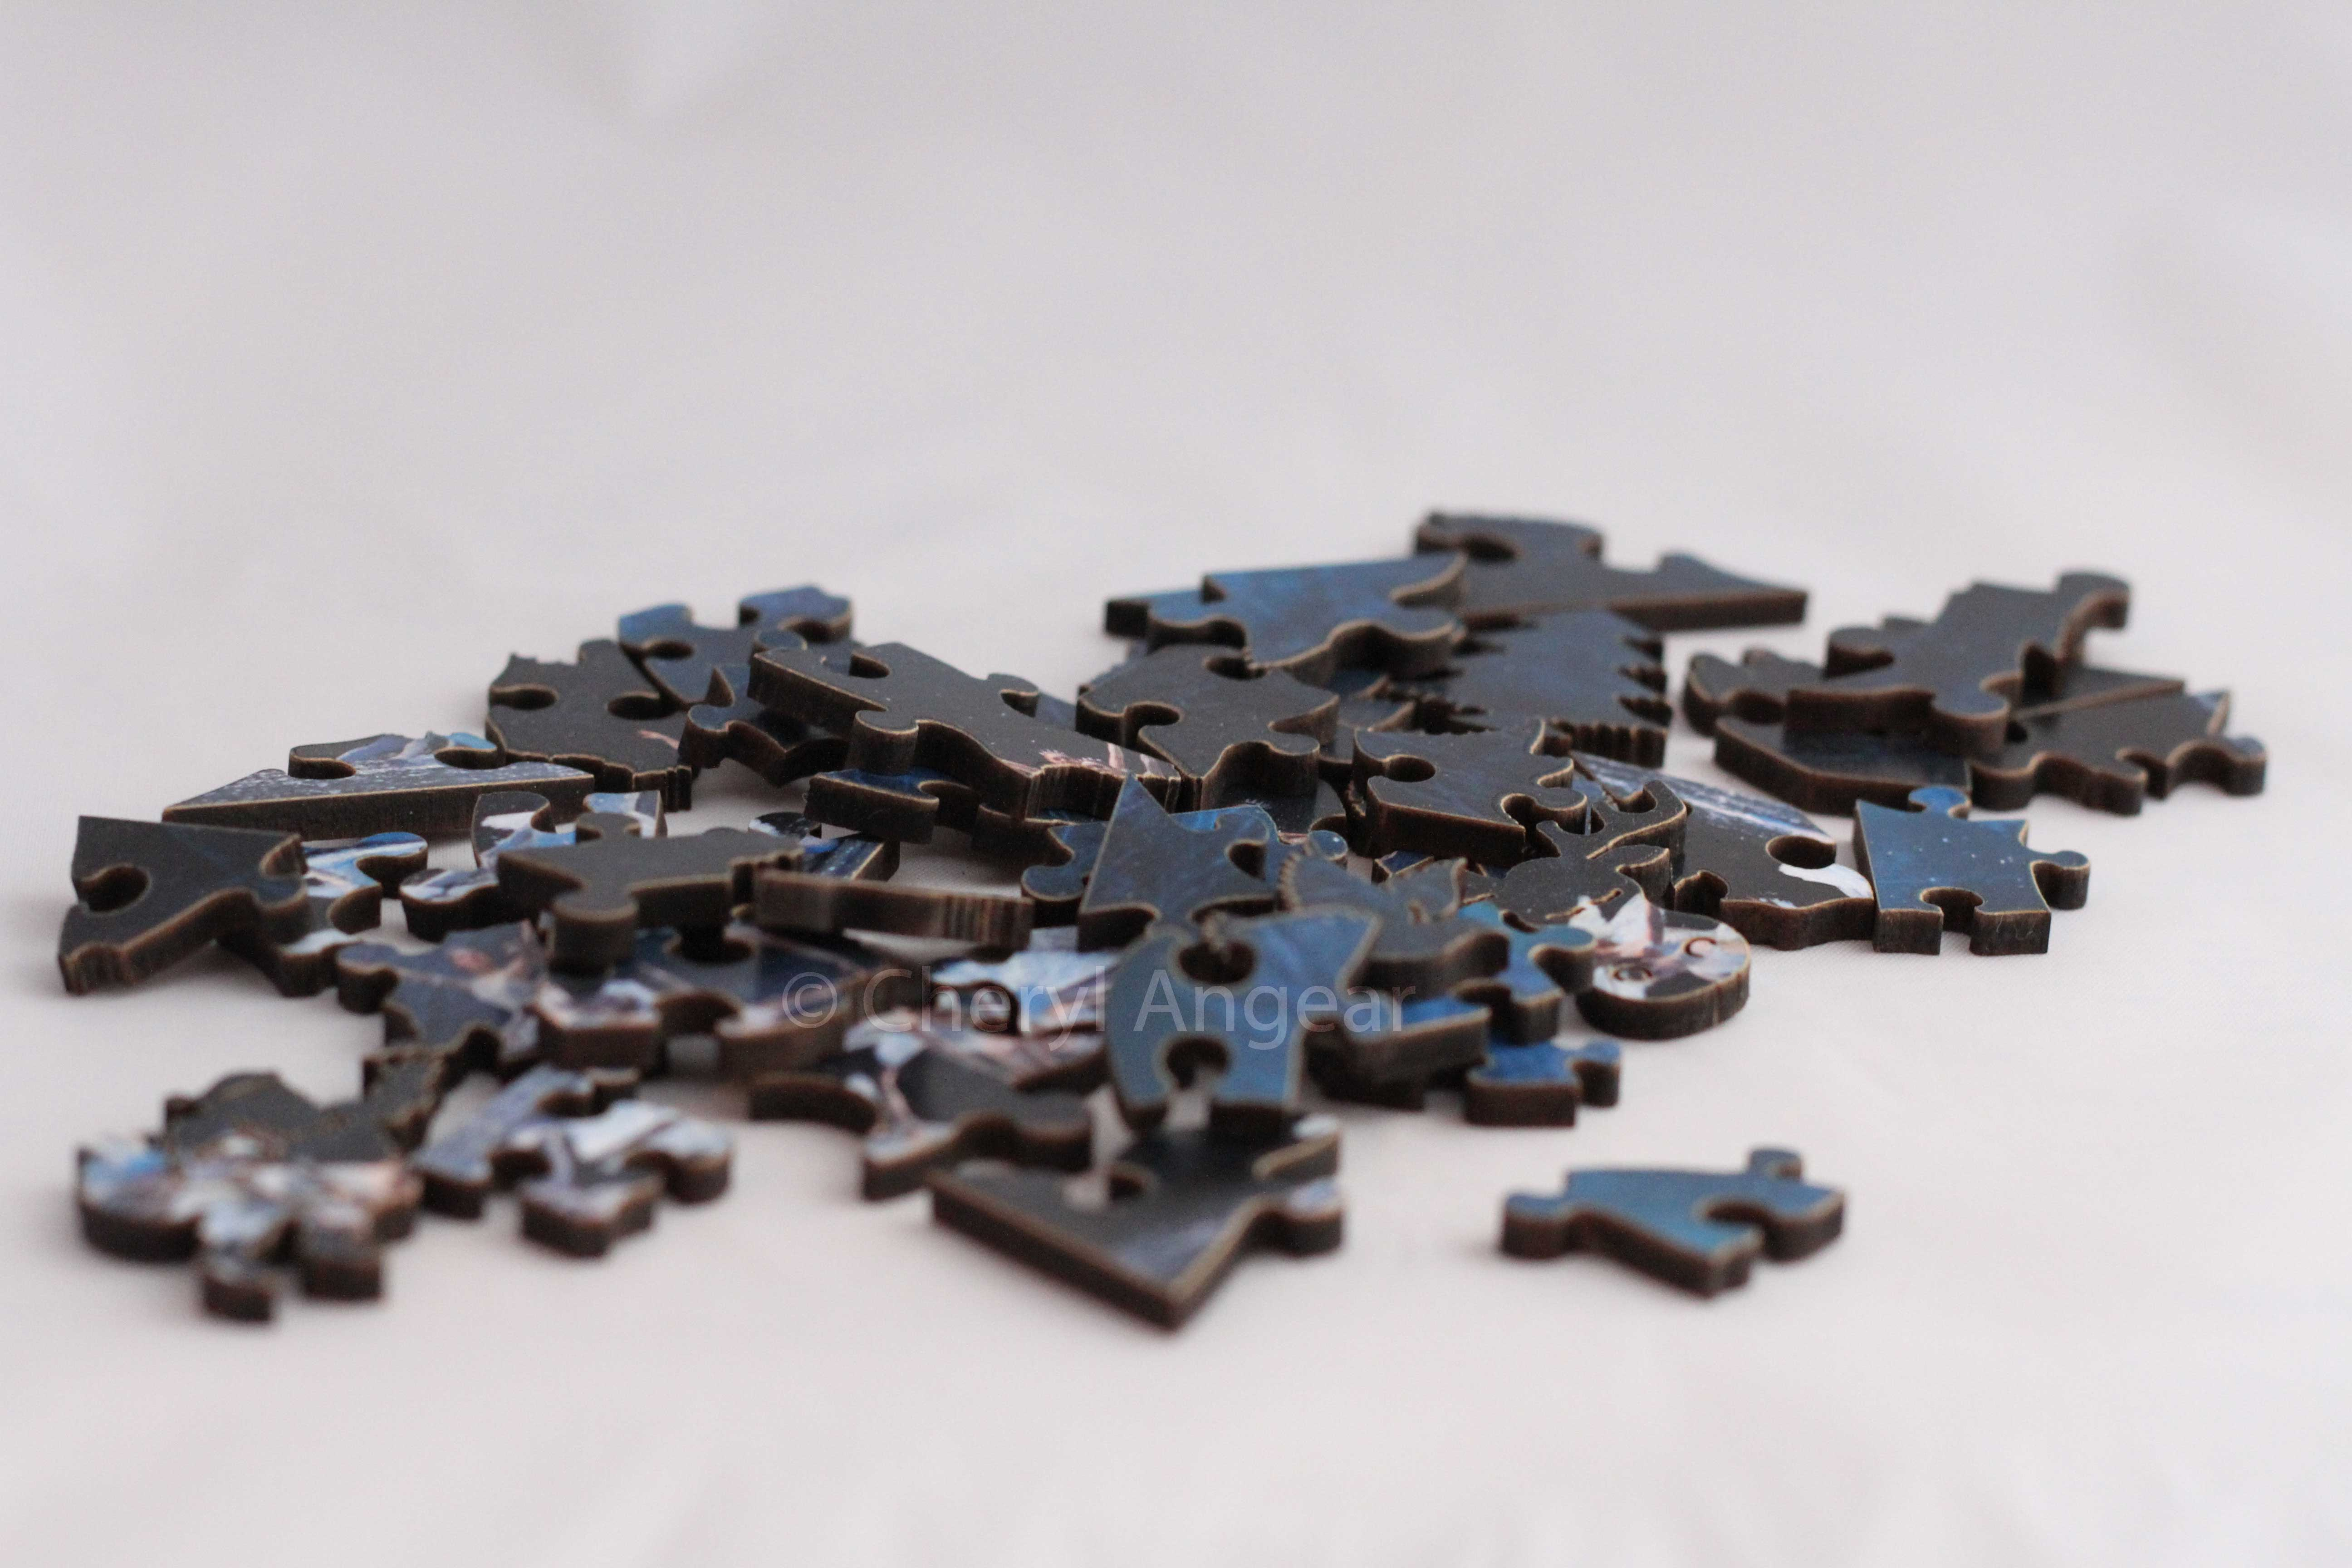 wooden puzzle Photograph by Cheryl Angear